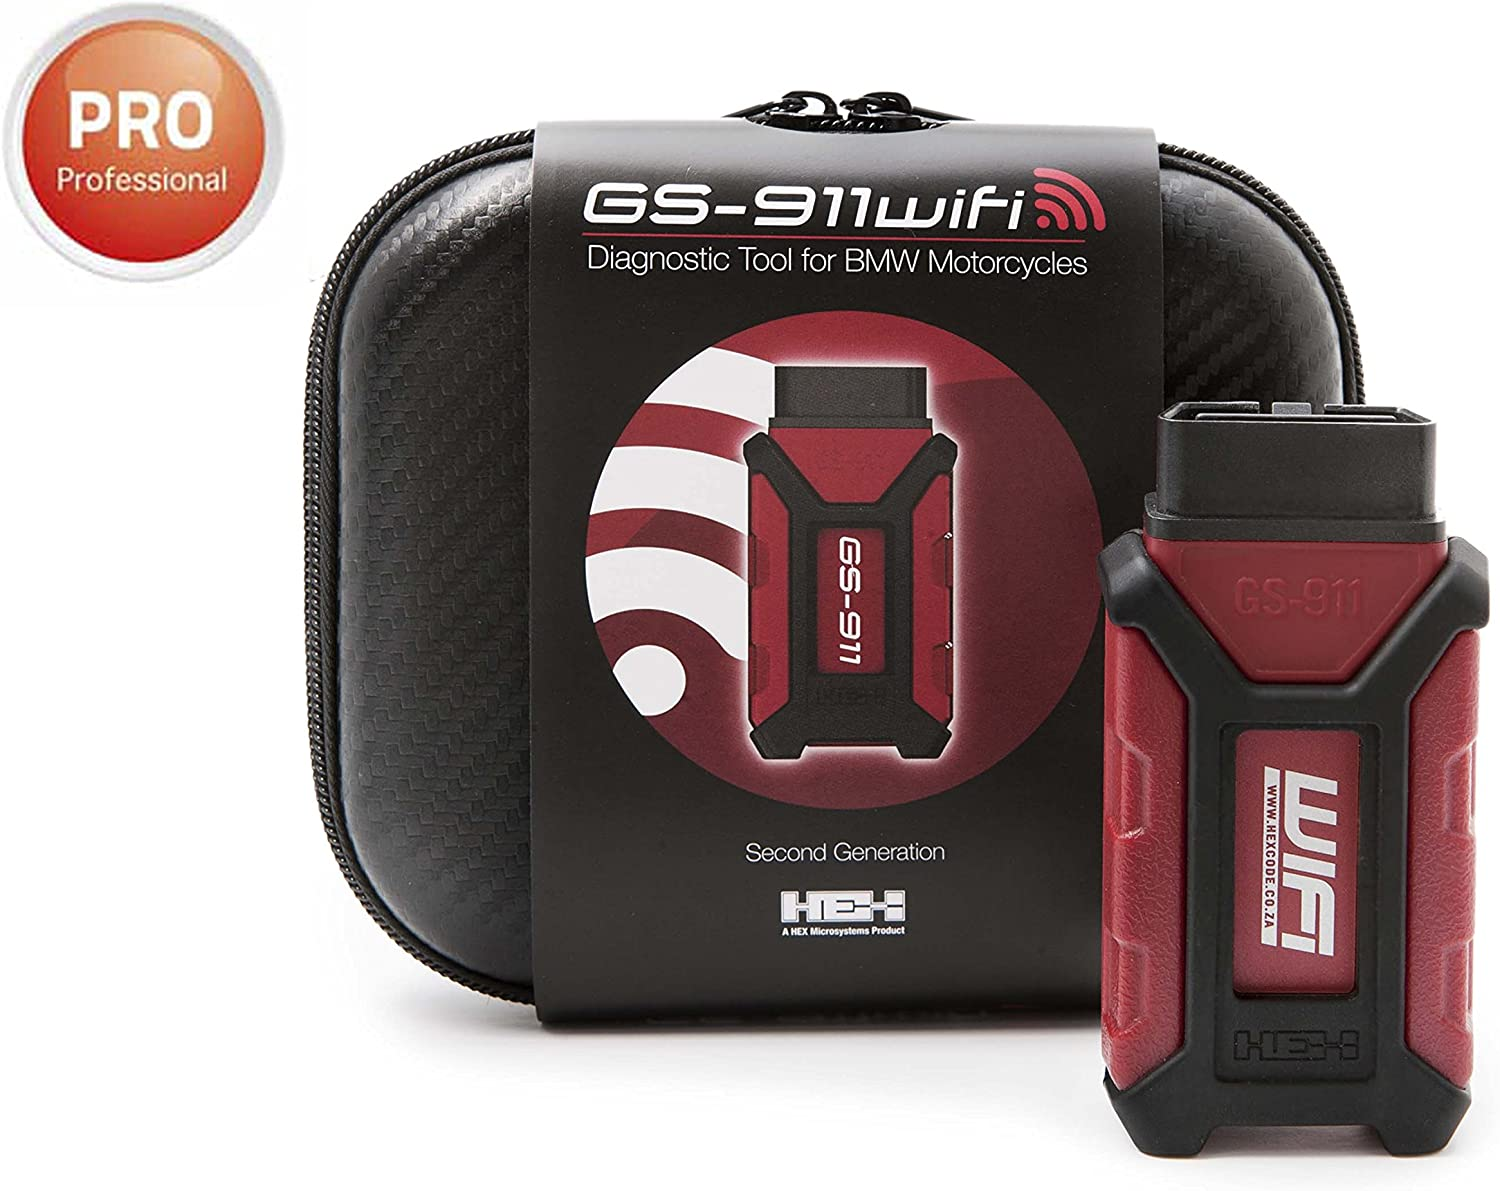 HEX Code GS911WIFI Access over wifi or USB GS-911 Wifi Diagnostic Tool for BMW Motorcycles - Services Up to 10 VINs iOS /& MAC Compatible ENTHUSIAST VERSION